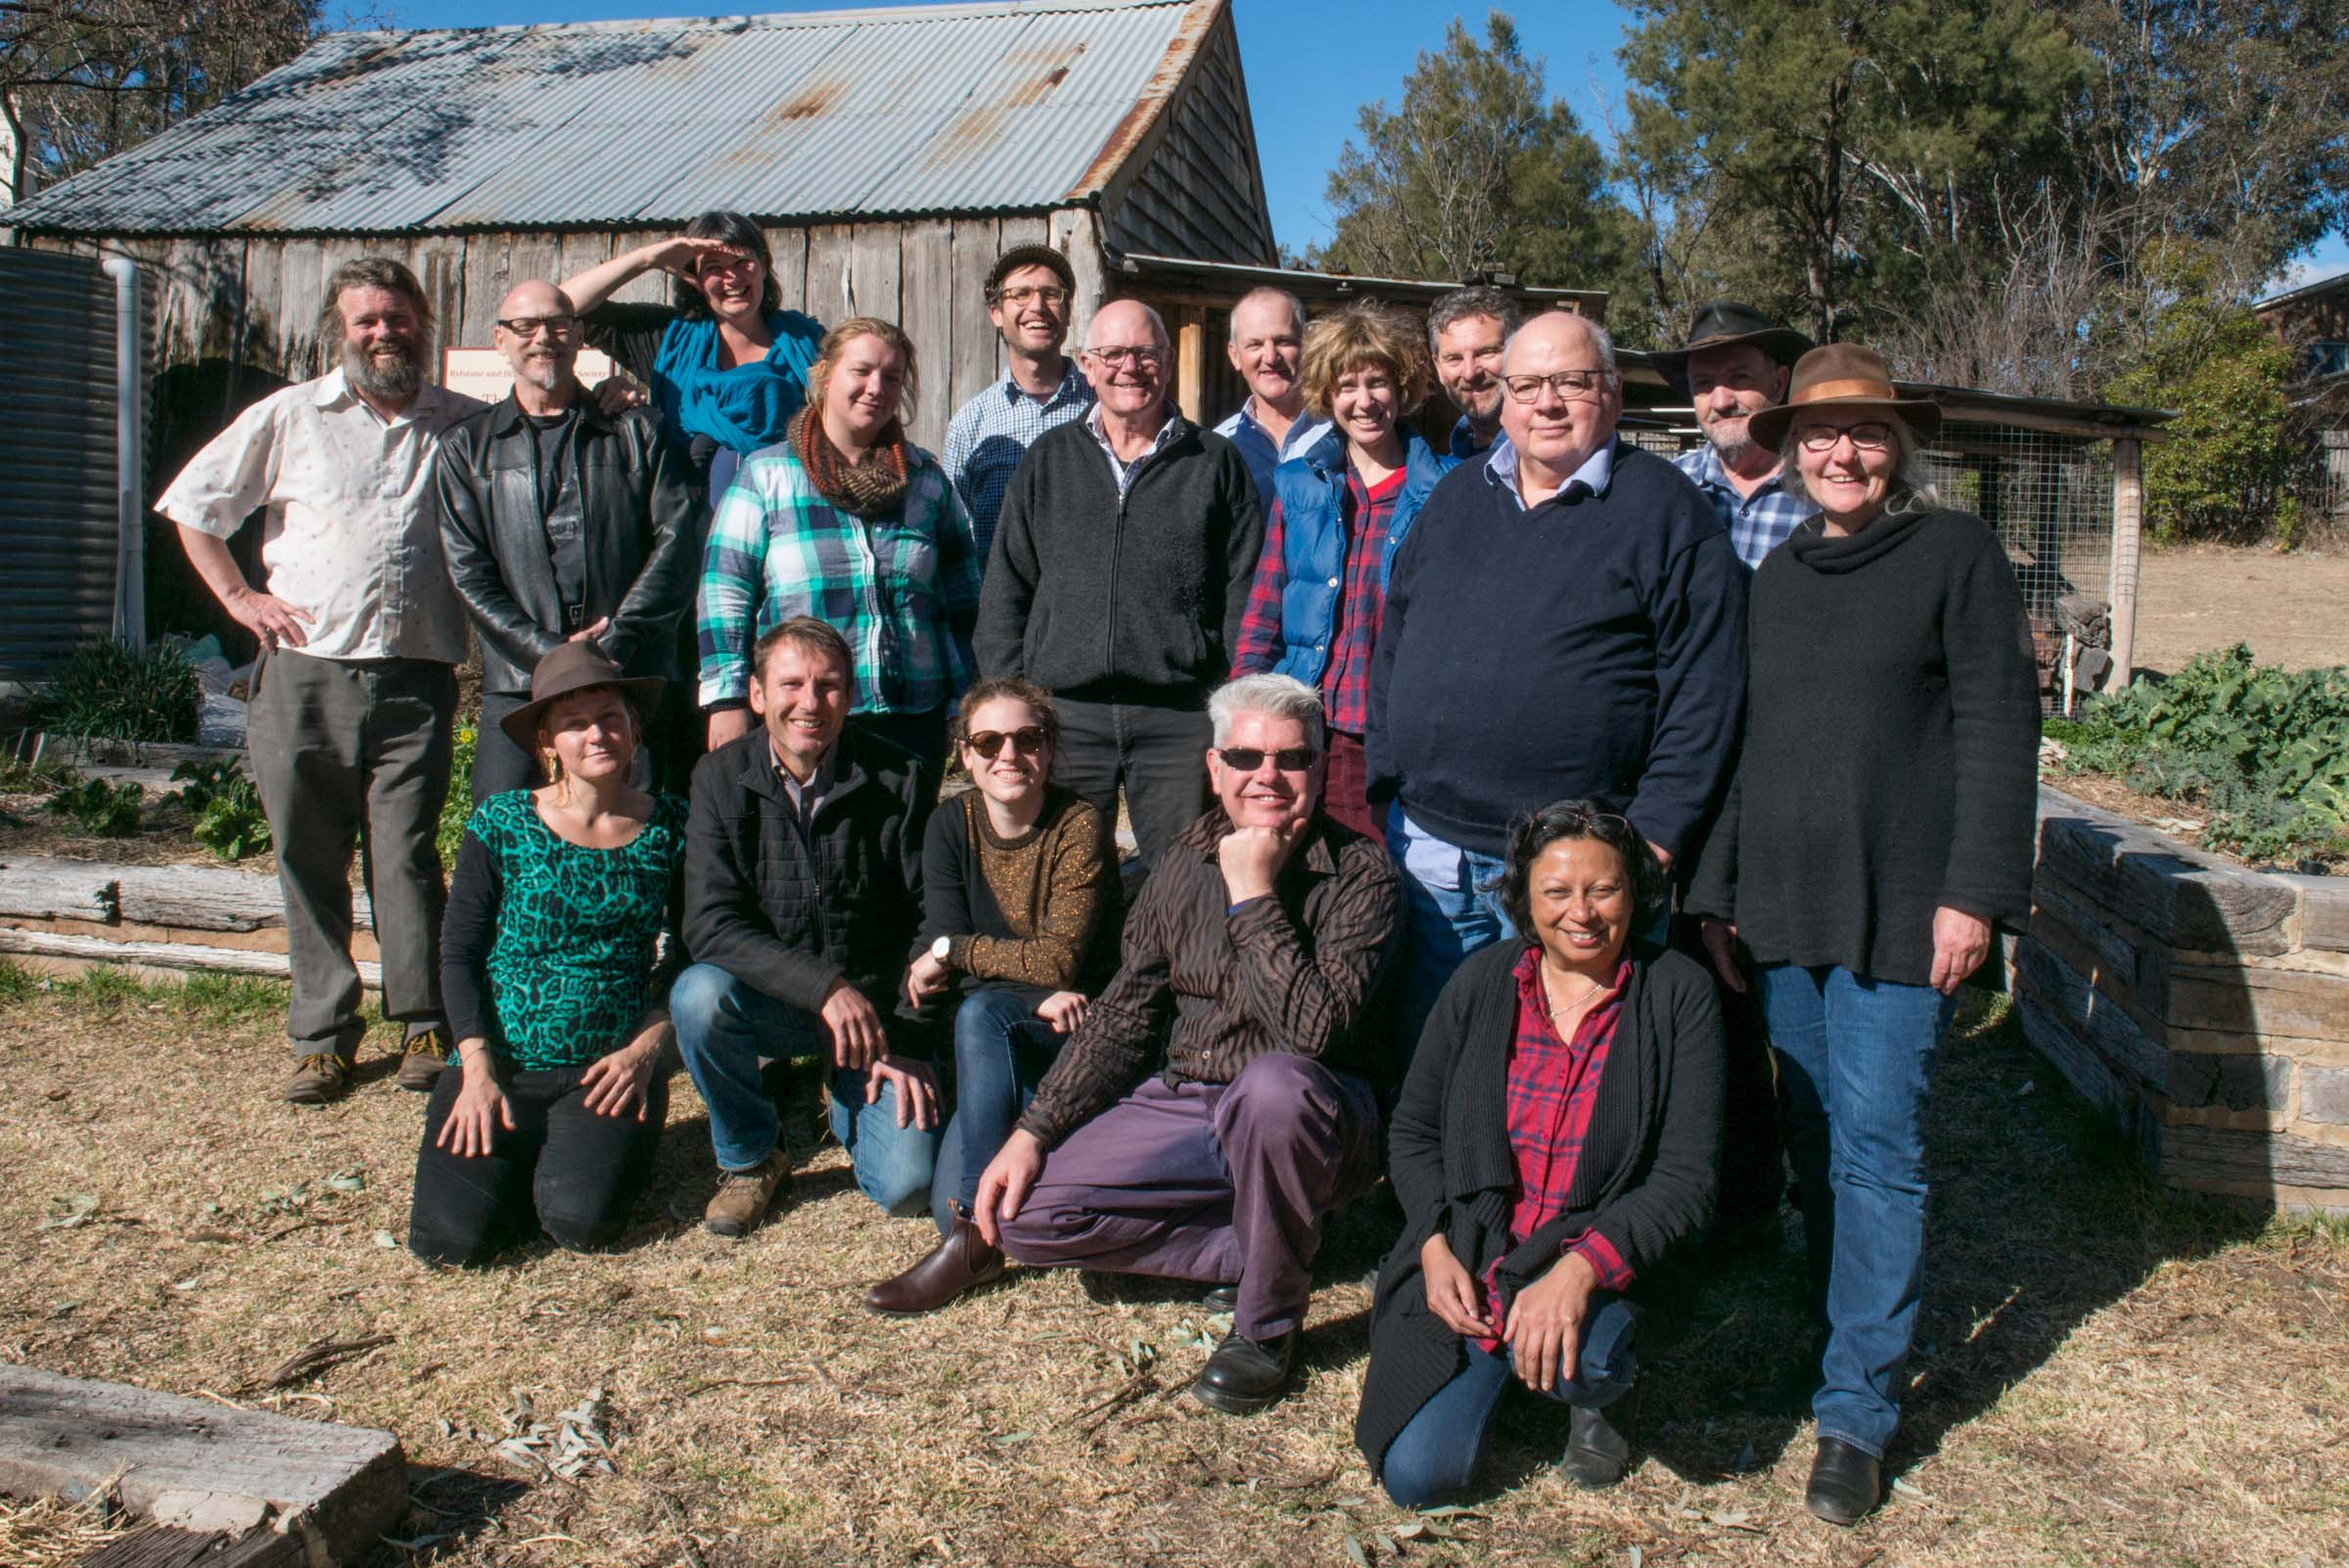 All of us at Rylstone's famous Yum-Cha and Tea House. Thanks to Emma Wisser for a great photo!